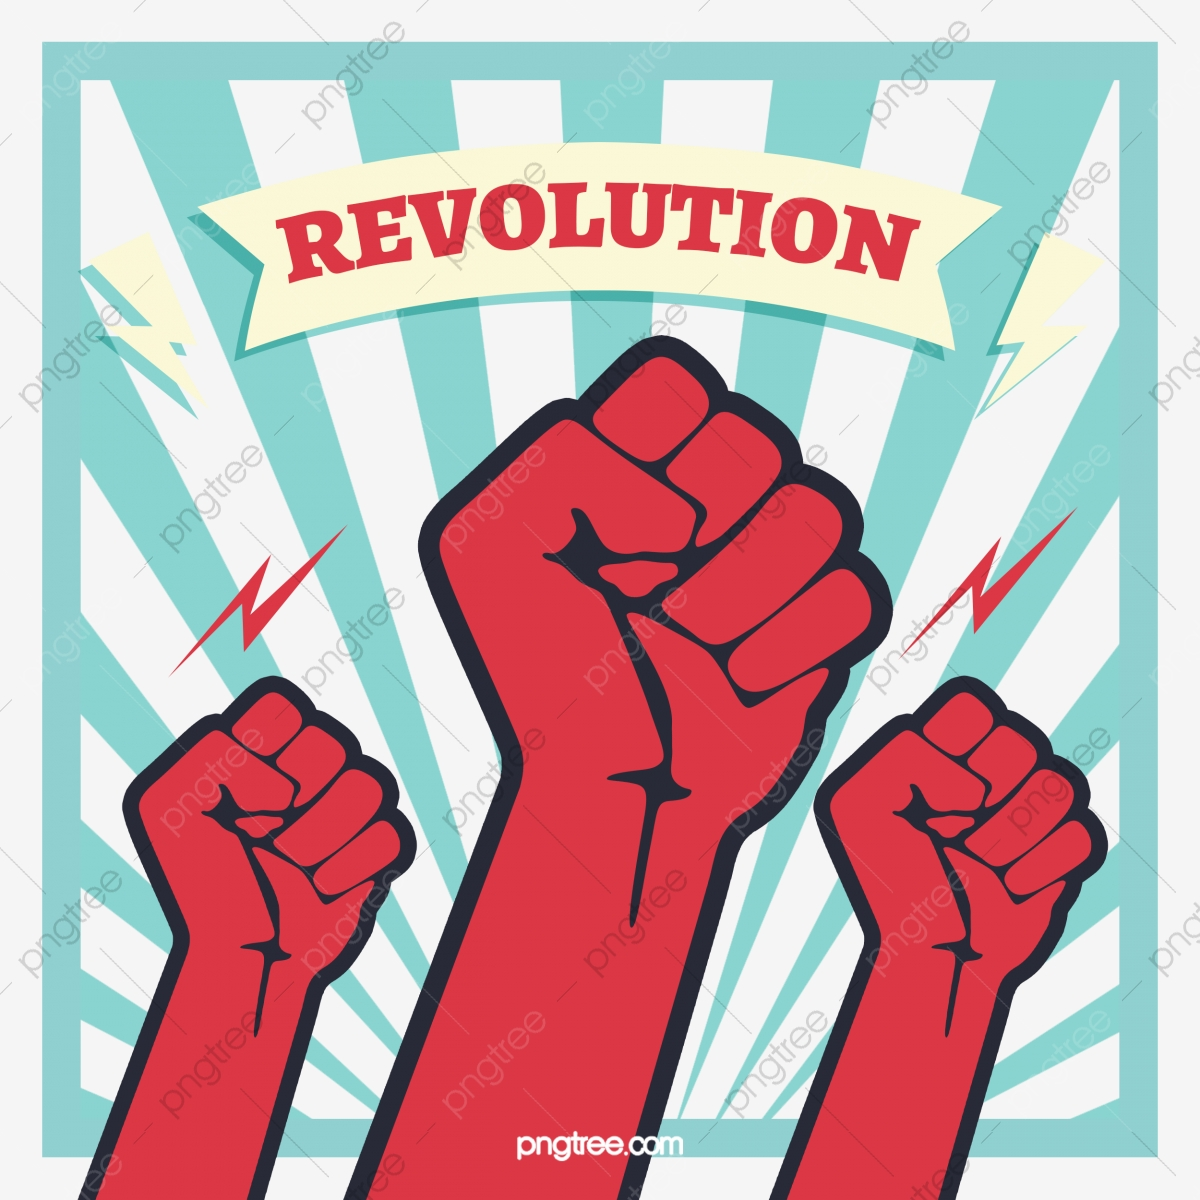 Retro Style Master Worker Revolution Fist Fist Clipart Exaggerated Lines Fist Png Transparent Clipart Image And Psd File For Free Download Microphone drawing , mic png clipart. https pngtree com freepng retro style master worker revolution fist 5339629 html